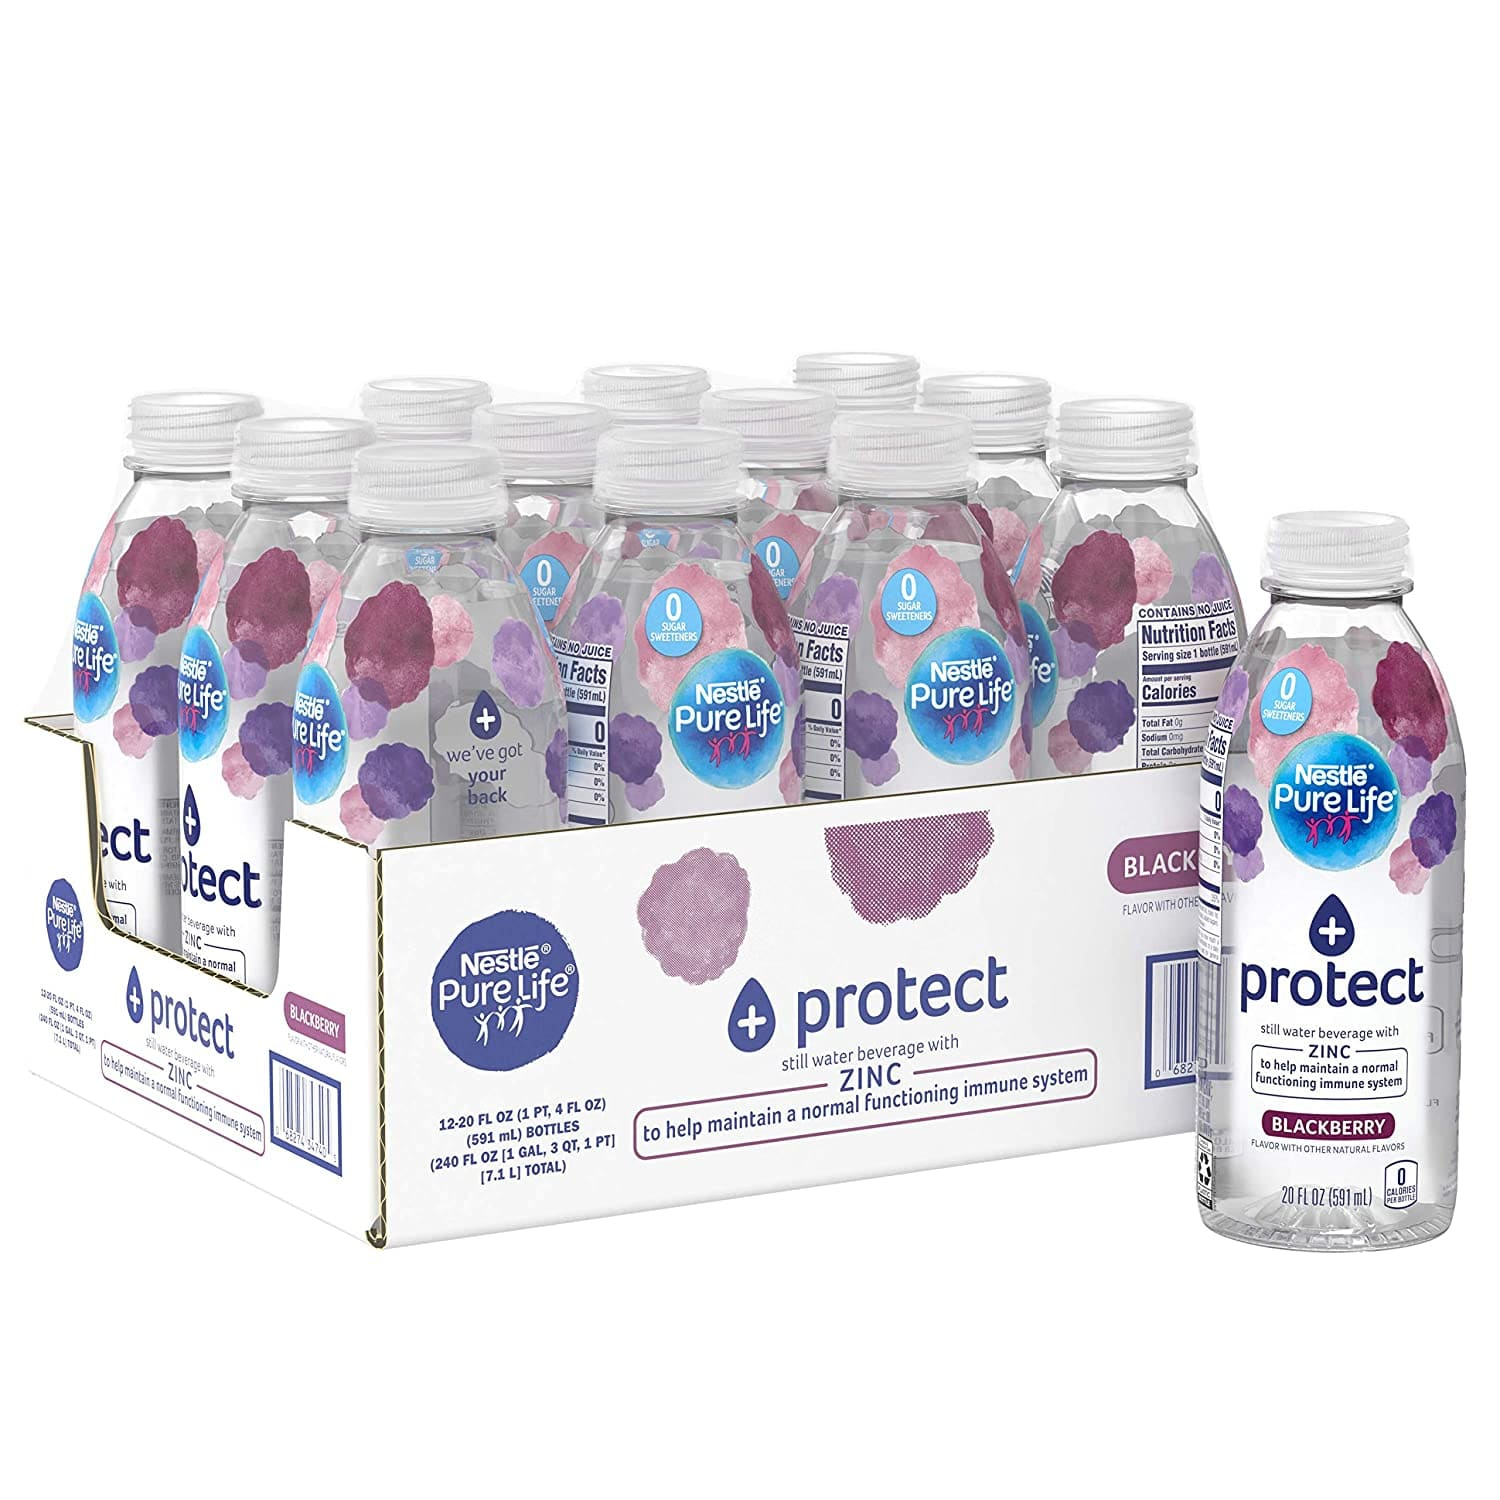 12-Pack 20-Oz Nestle Pure Life+ Enhanced Water Beverage (Blackberry or Lemon) $7.35 w/ S&S + Free S&H w/ Prime or $25+